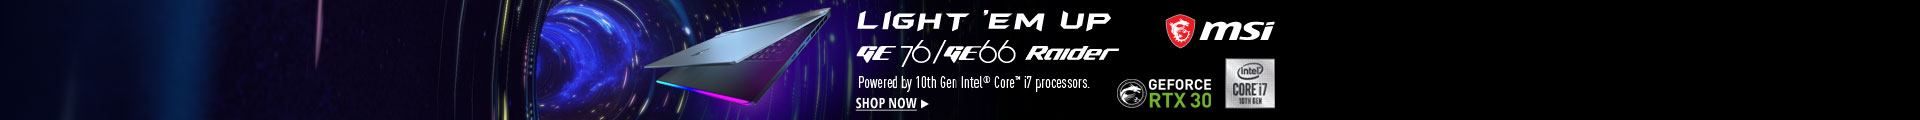 Powered by 10th gen intel ore i7 processors